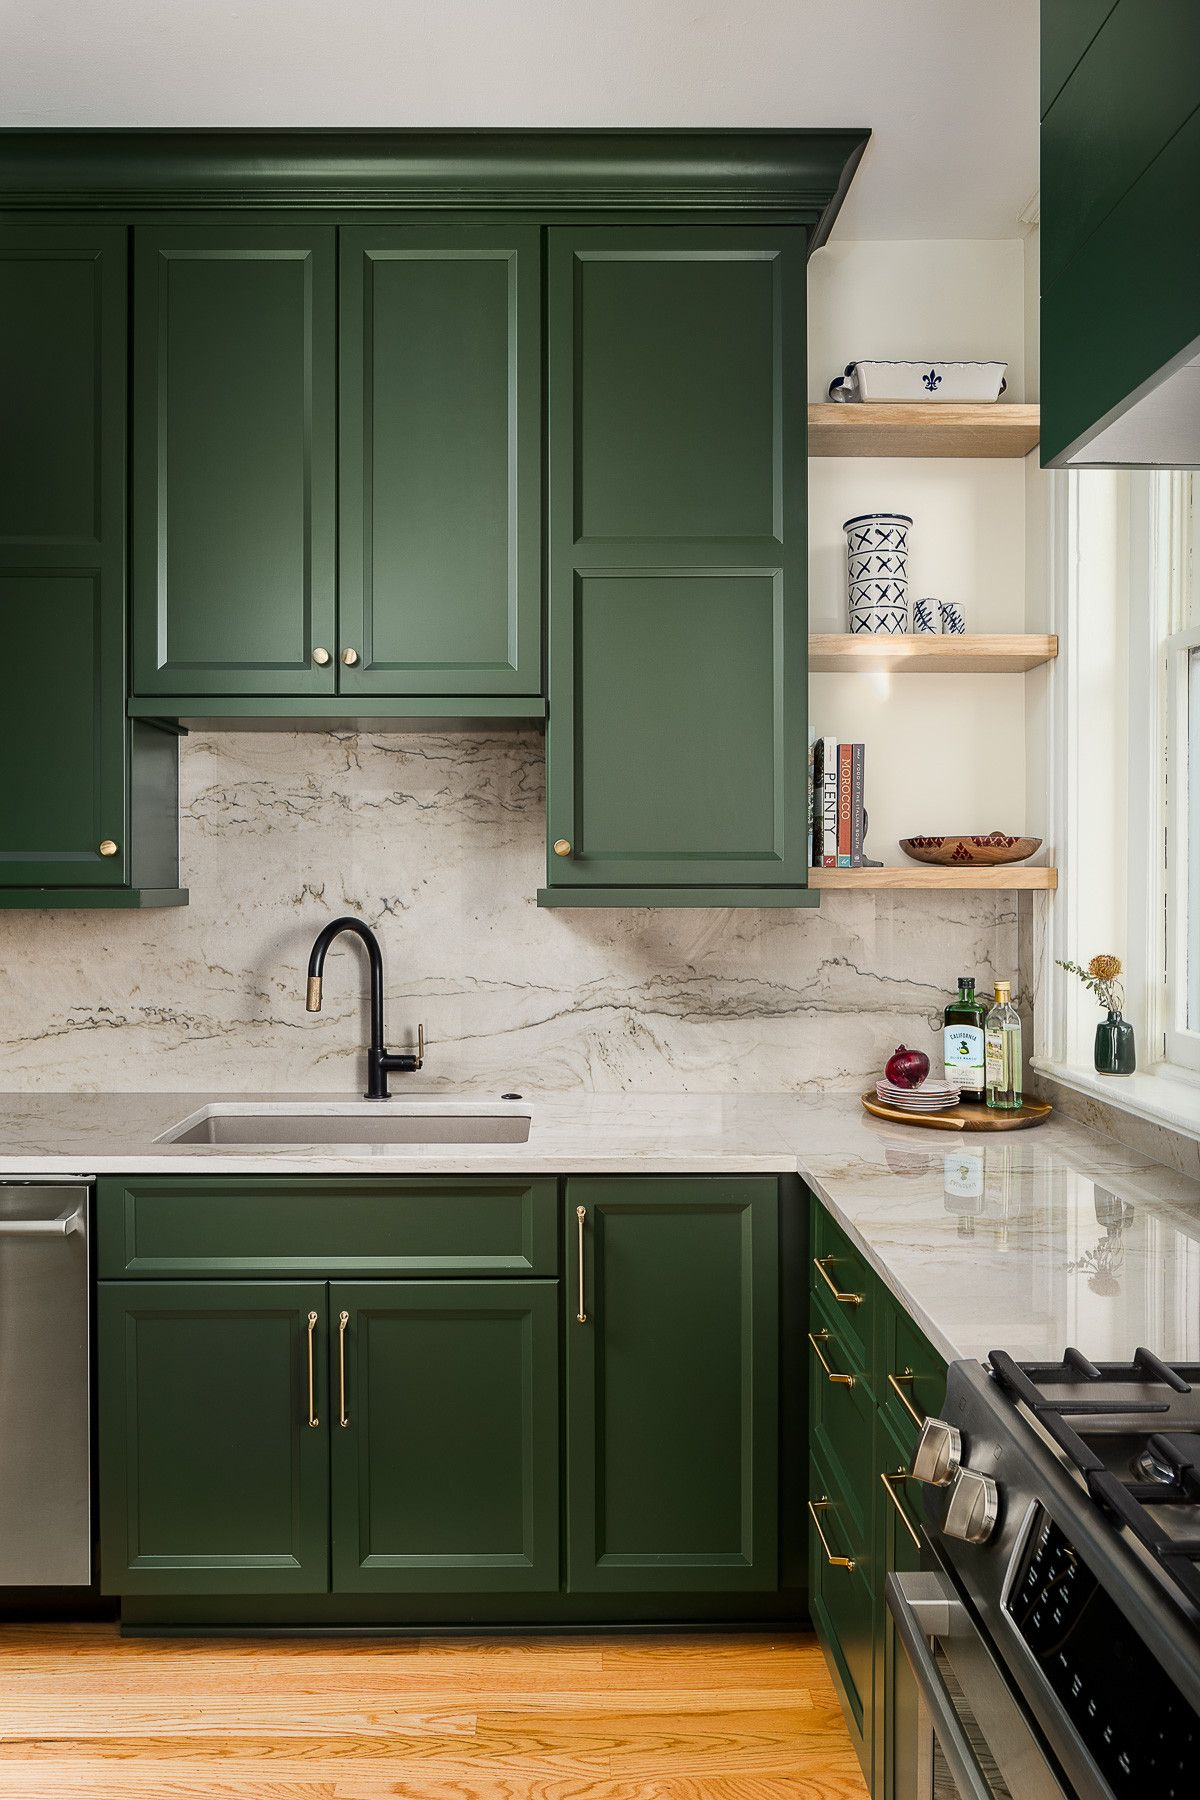 White-and-green-is-set-to-be-a-trendy-kitchen-color-scheme-in-2021-14931